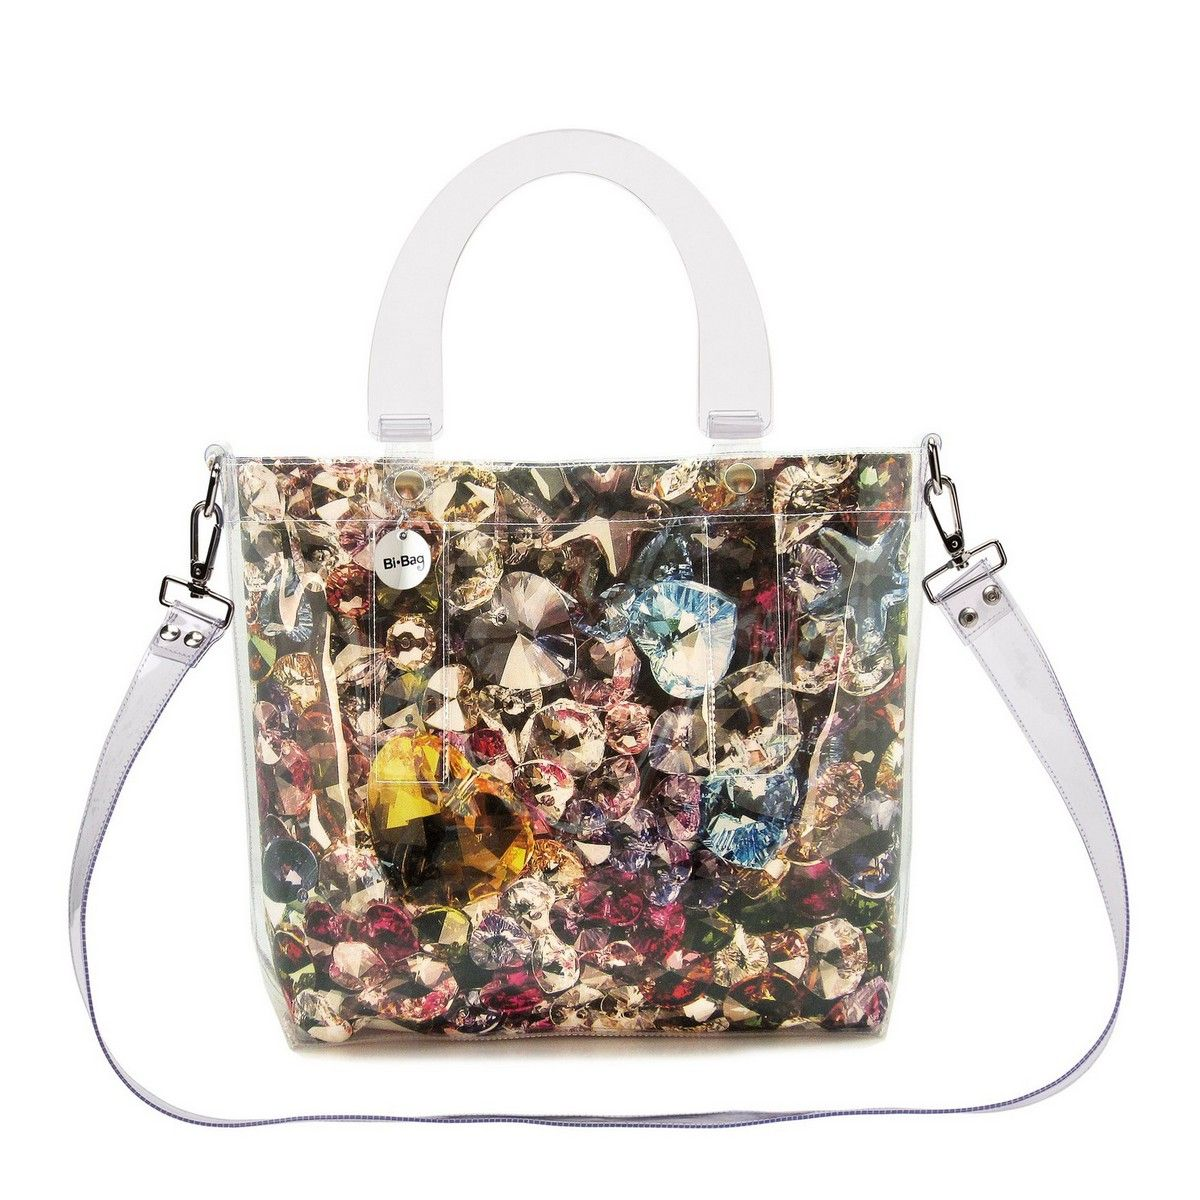 Fall Winter 2017 16 Multi Coloured Stone Print Bi Bag It En Daily 488 Womens Bags Handbags Html